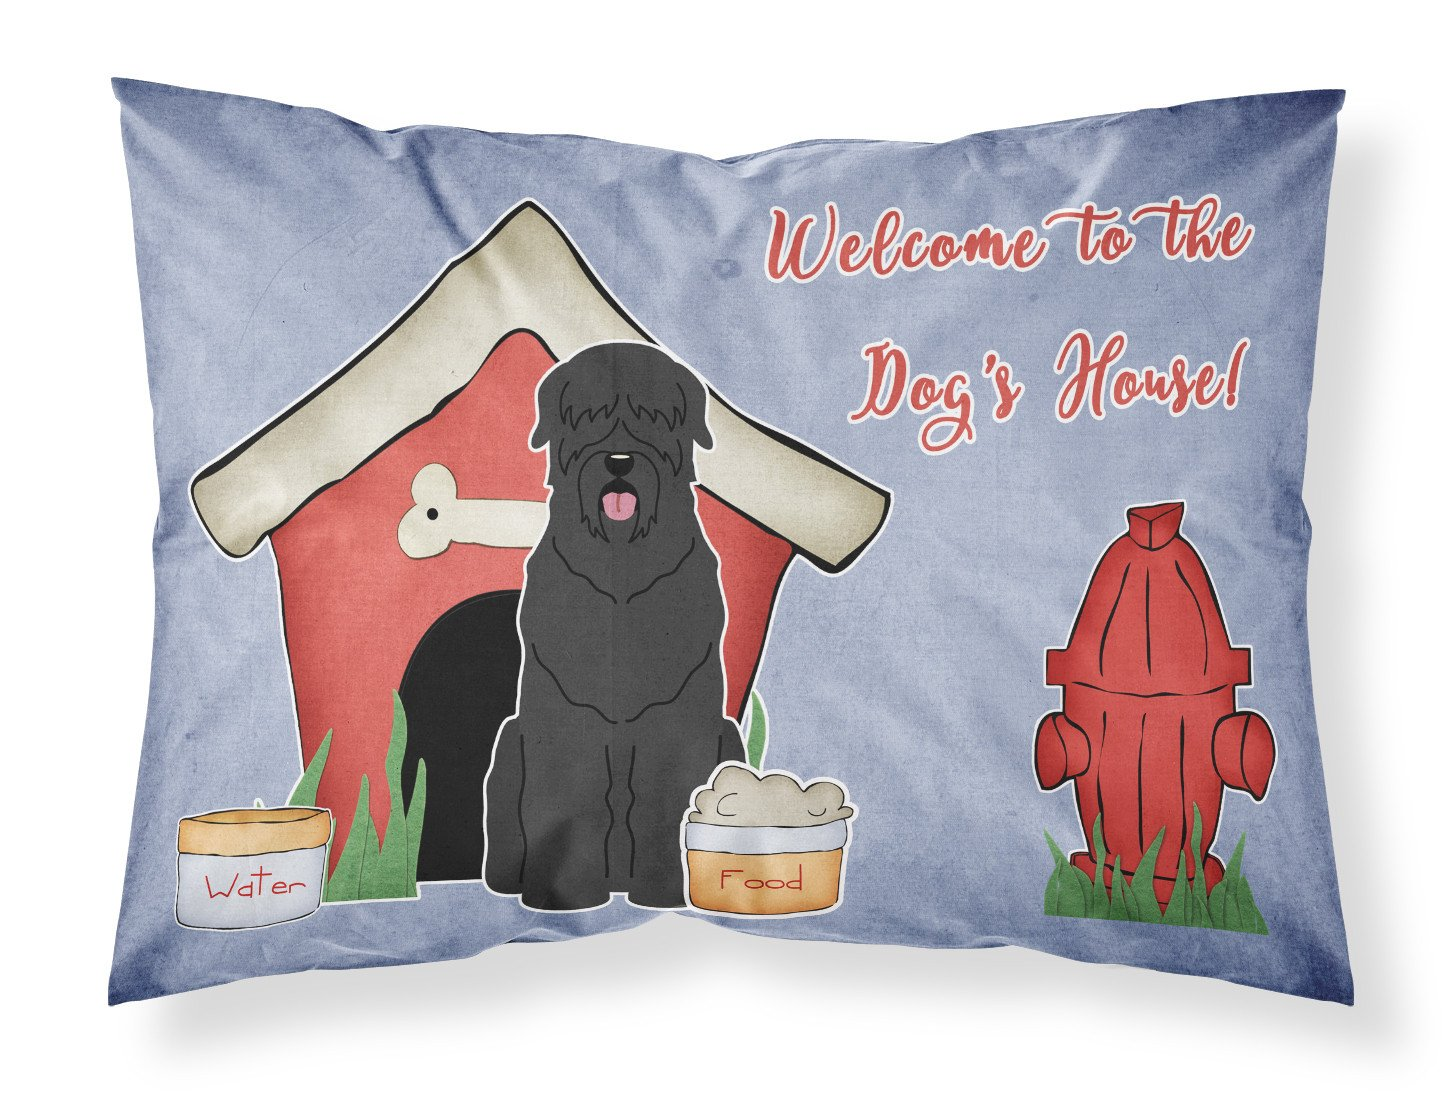 Dog House Collection Black Russian Terrier Fabric Standard Pillowcase BB2780PILLOWCASE by Caroline's Treasures